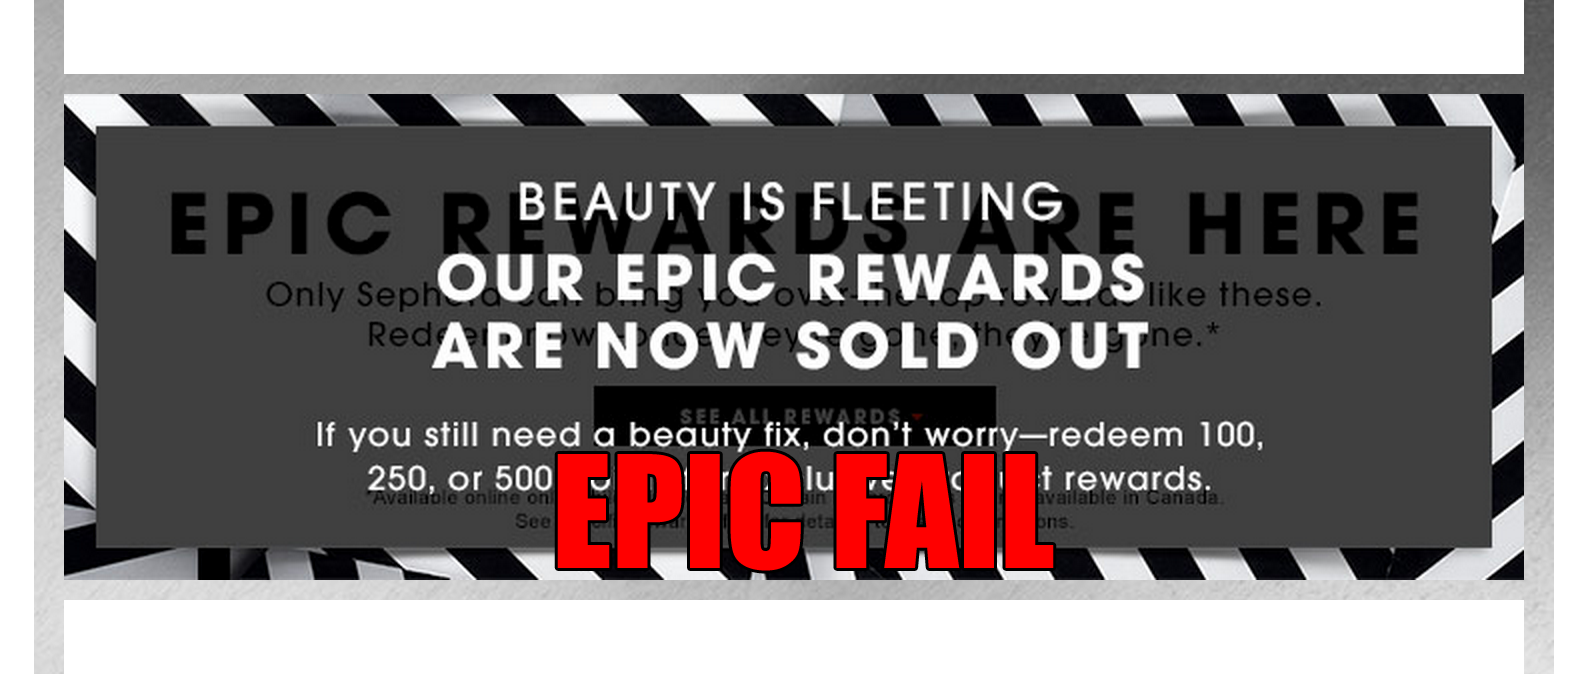 Sephora Promises Epic Rewards, Customers Get Epic Letdown